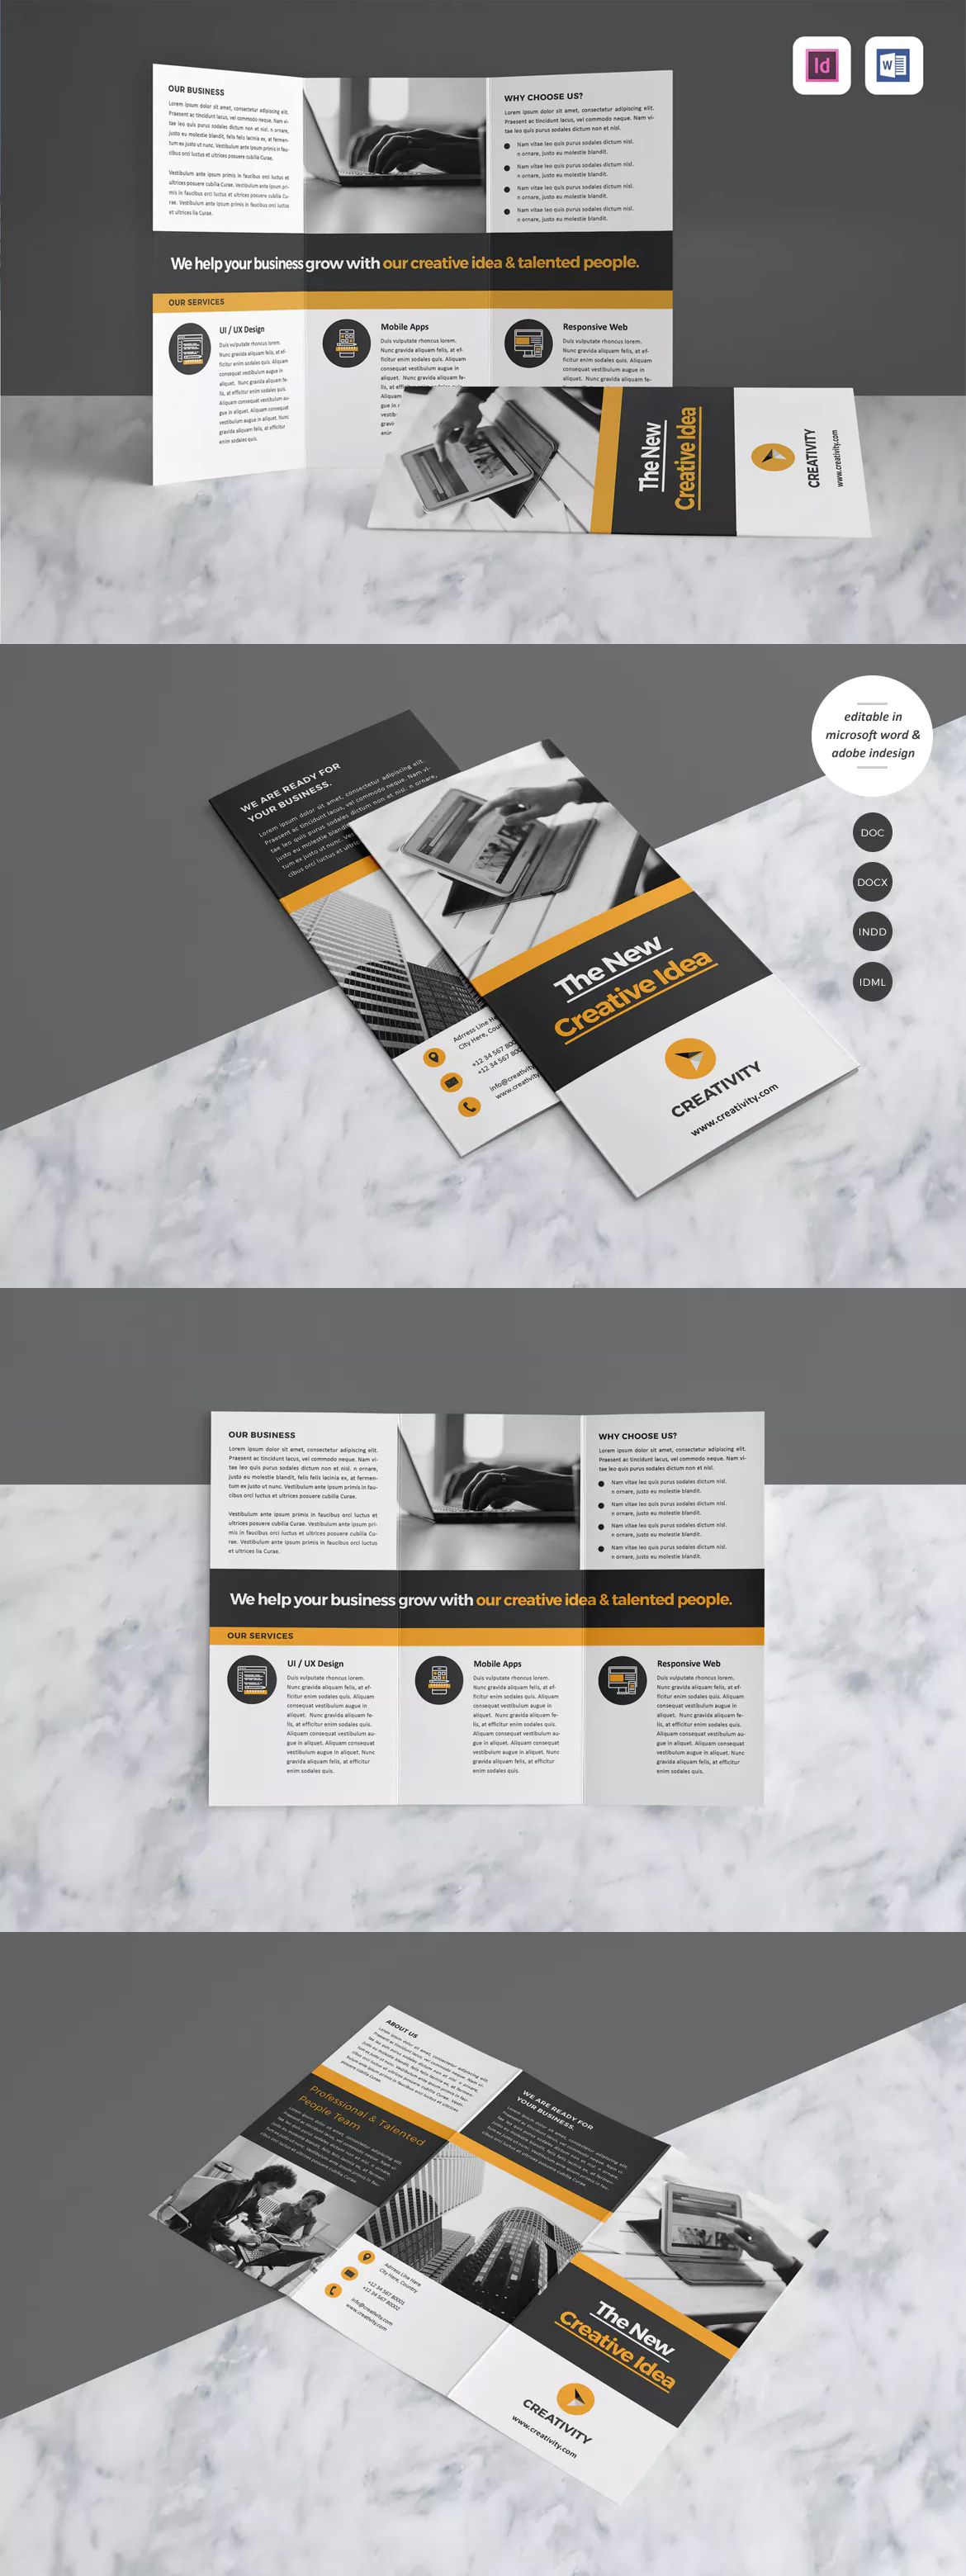 Brochure Template InDesign INDD - A4 | Inspiration | Pinterest ...